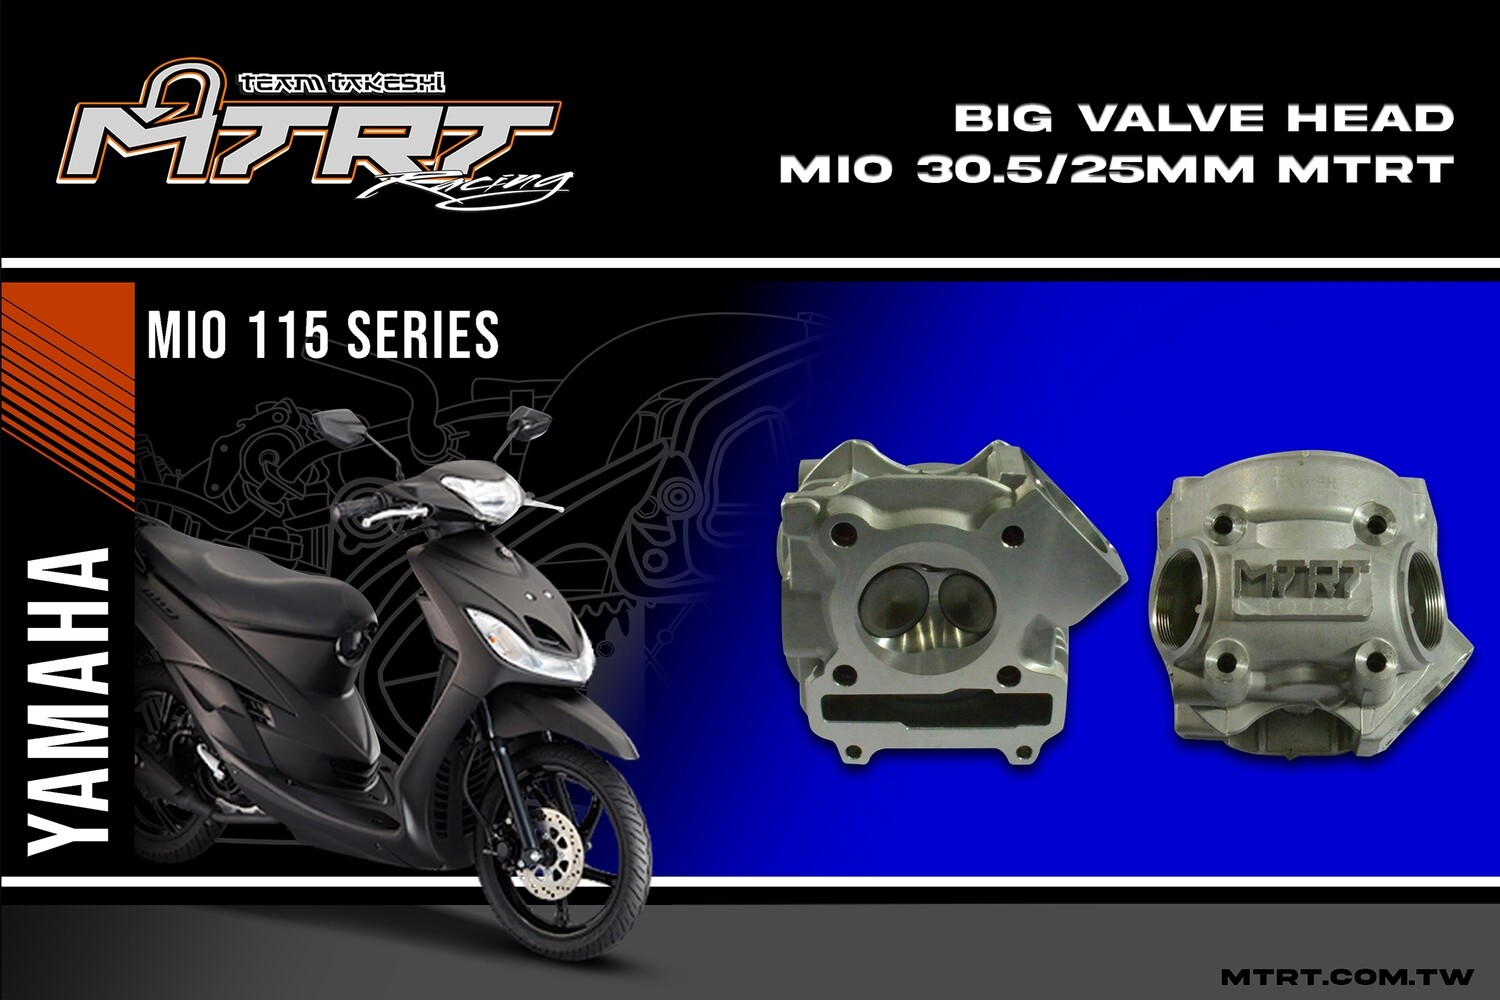 BIG VALVE HEAD MIO 30.5/25mm  MTRT(+manifold+cams ST3 package)